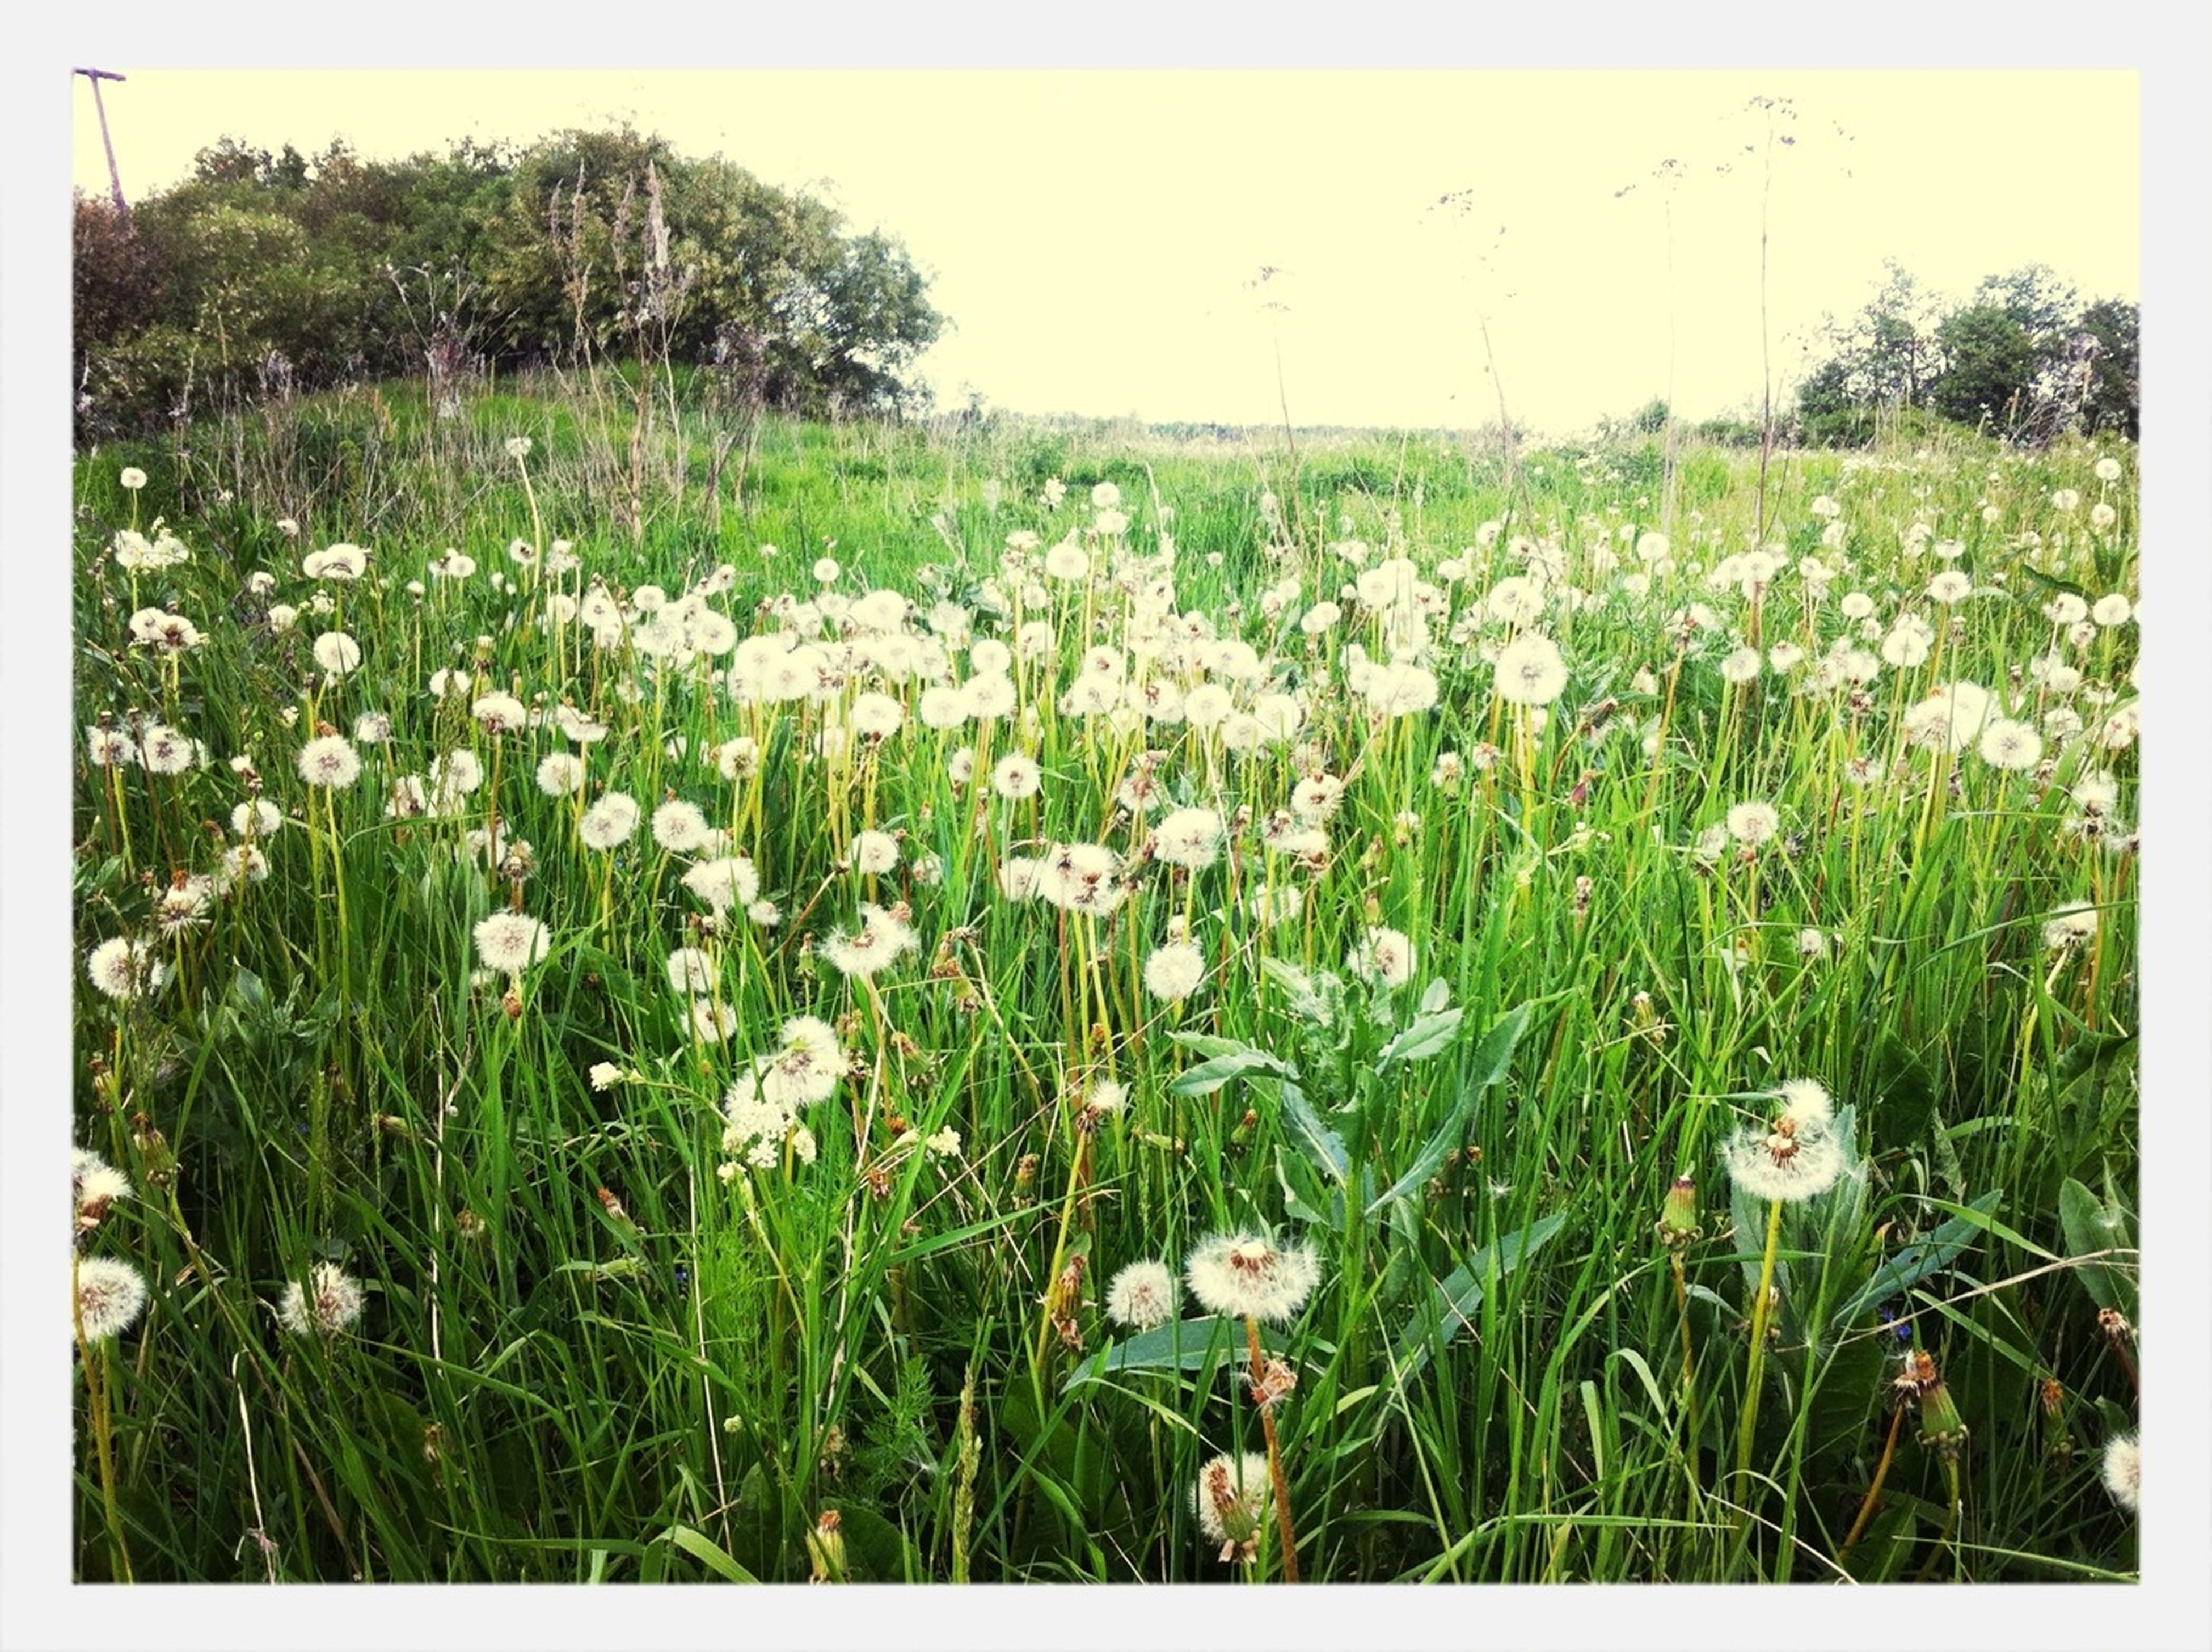 flower, field, growth, freshness, beauty in nature, grass, nature, fragility, plant, landscape, wildflower, meadow, blooming, tranquil scene, tranquility, rural scene, stem, clear sky, sky, transfer print